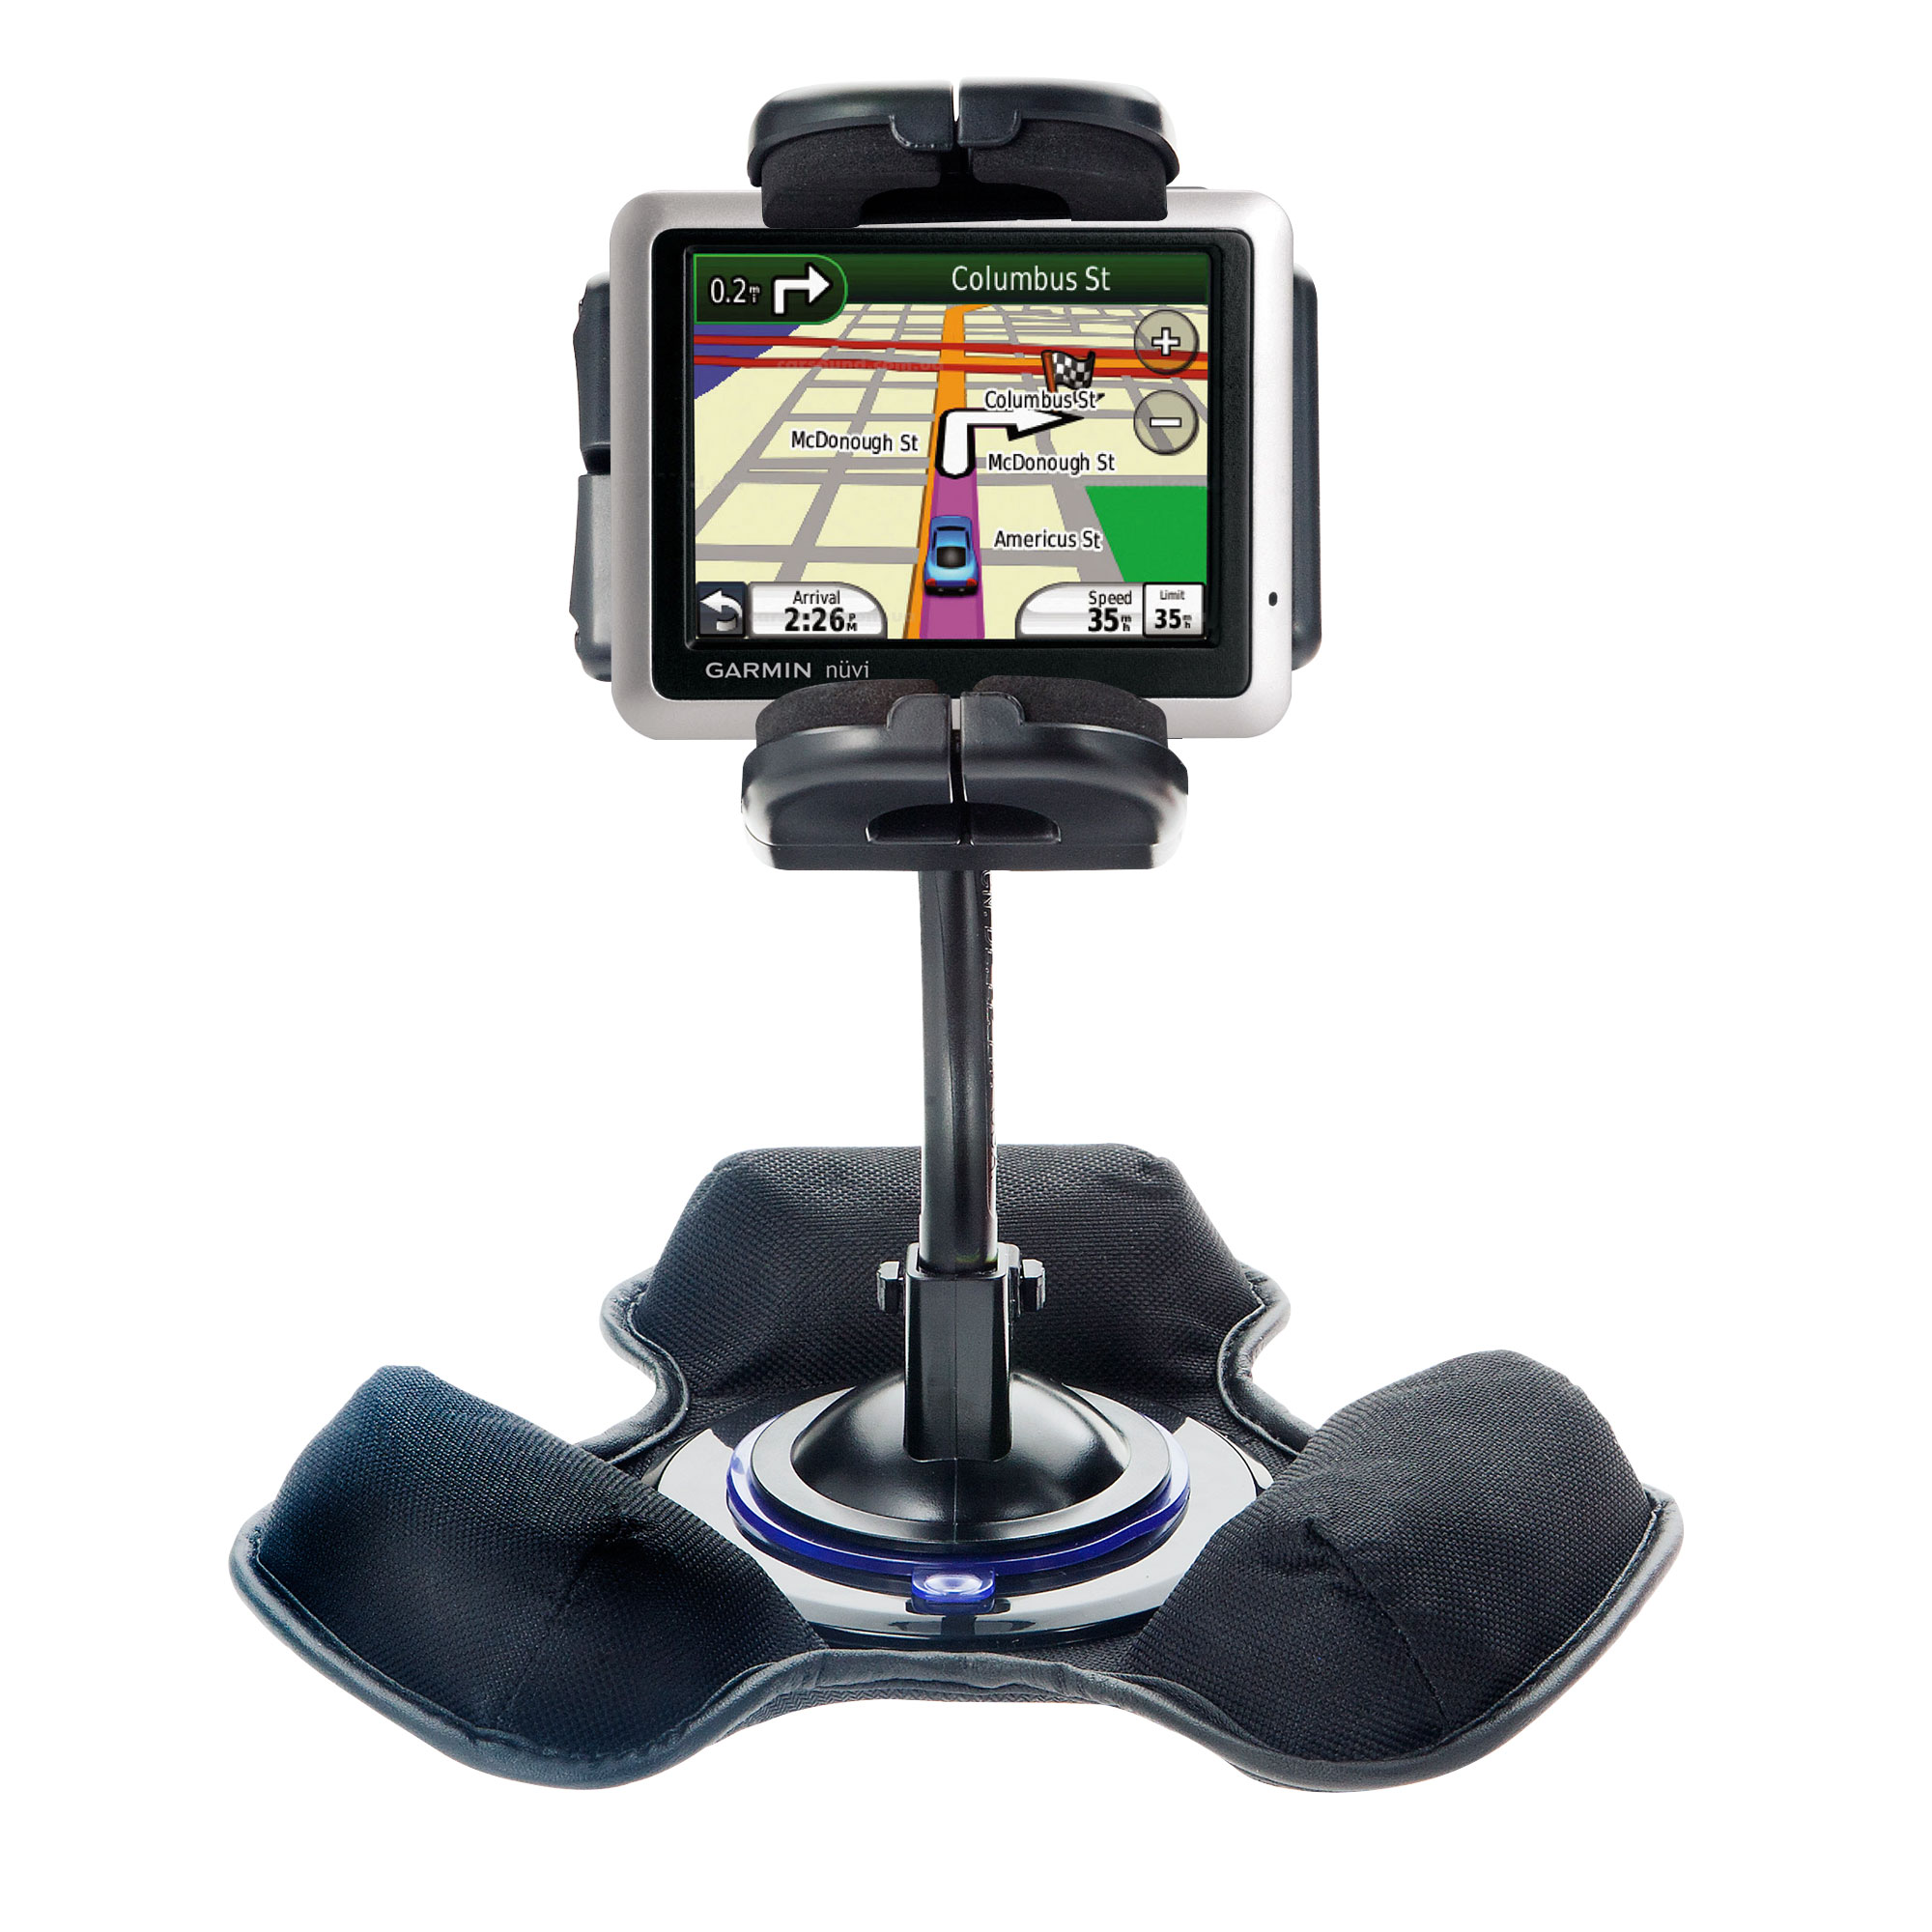 Dash and Windshield Holder compatible with the Garmin nuvi 1100